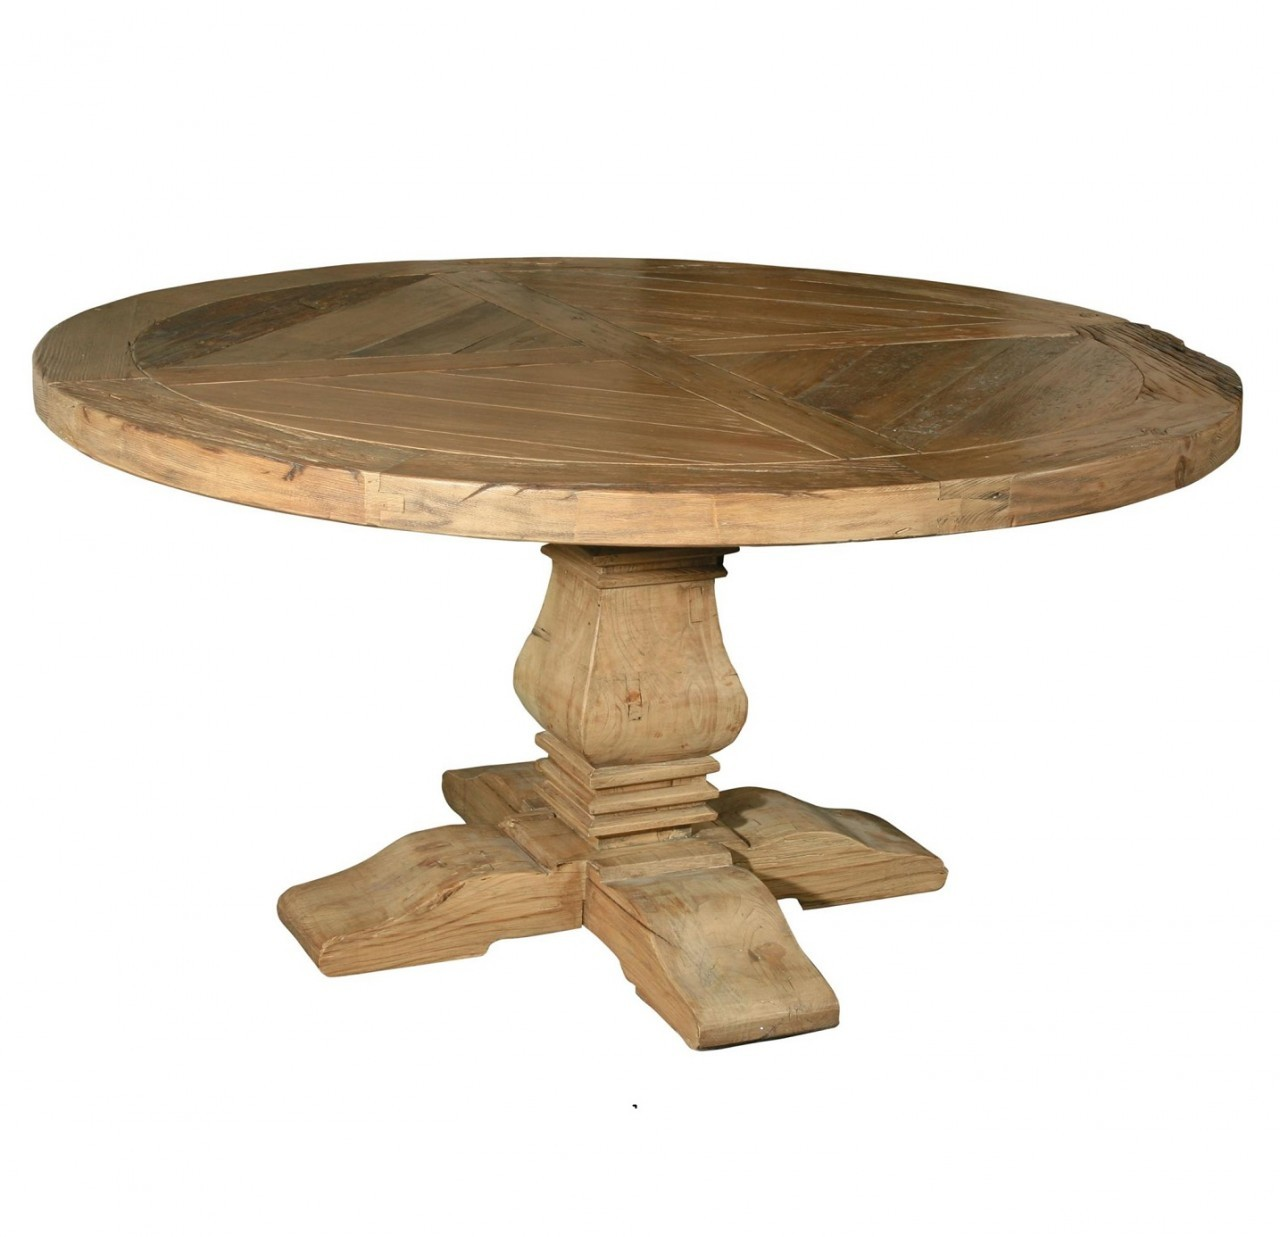 1280x1237px 8 Lovely 60 Round Pedestal Dining Table Picture in Furniture